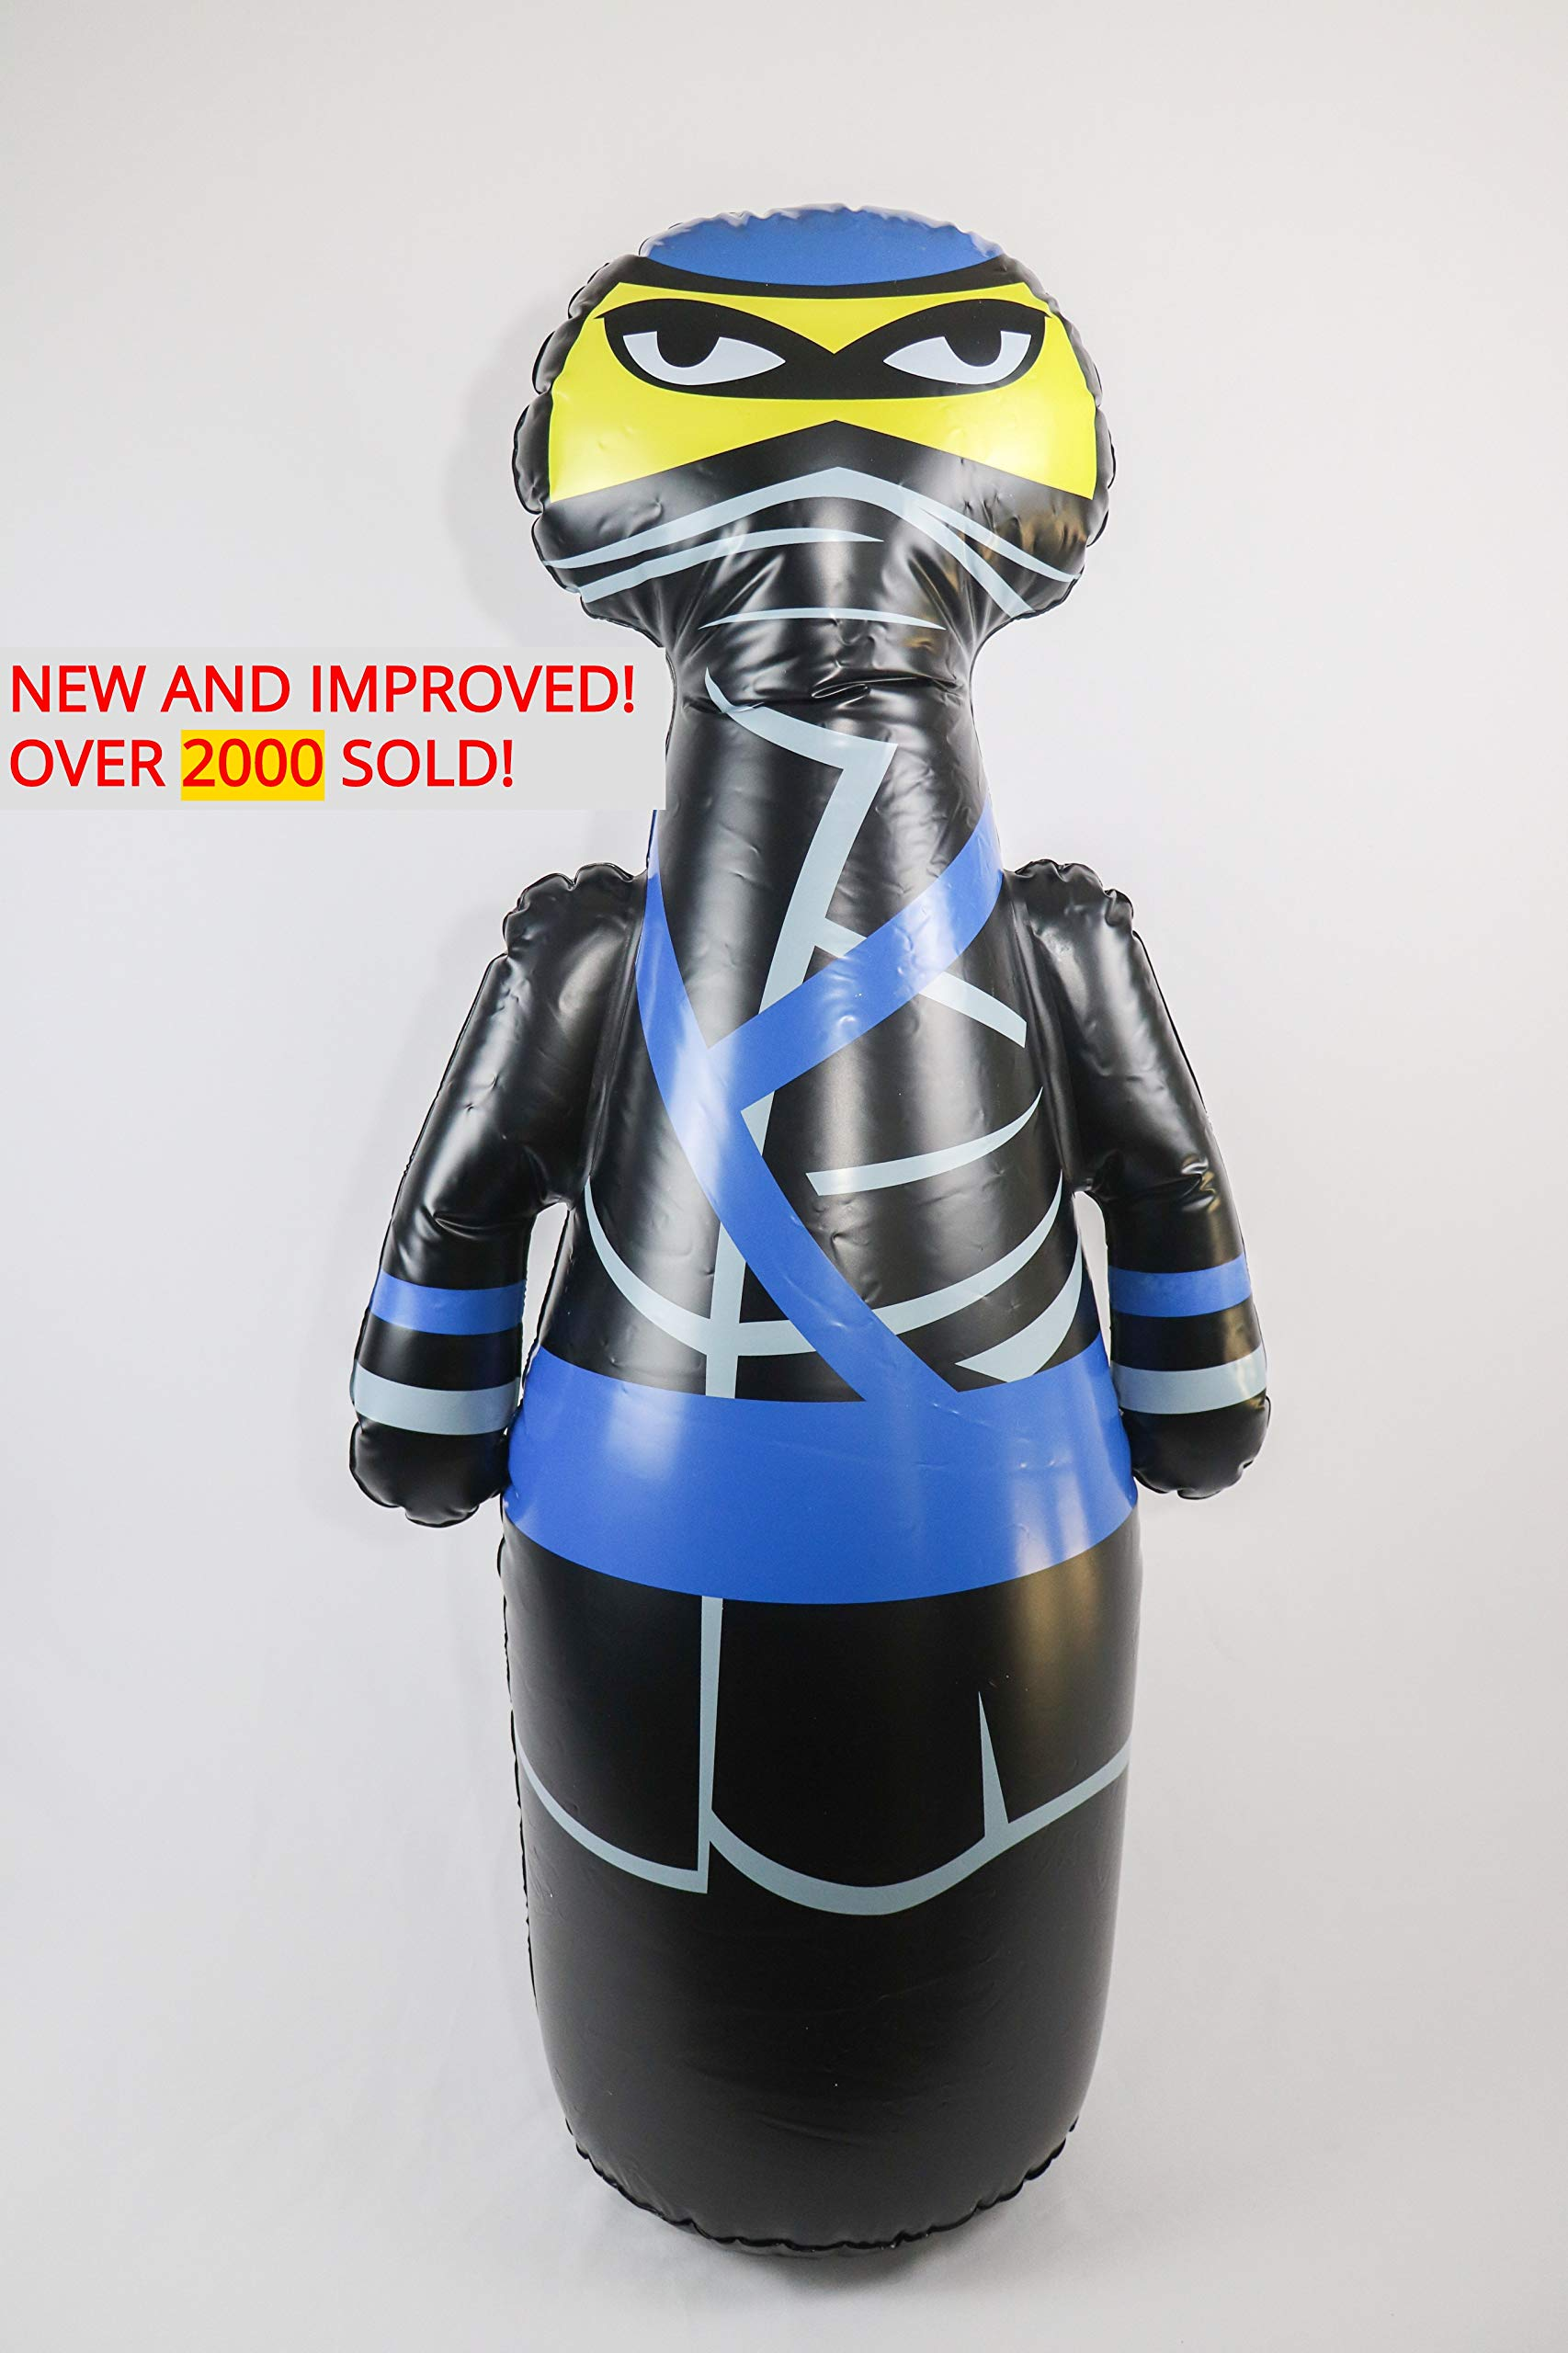 J&A's Inflatable Dudes Ninja 47 Inches - Bop Bag   Kids Punching Bag   Inflatable Toy   Boxing - Premium Vinyl- Comes with Sand-Filled Base for Bounce-Back Action! Weighted Bottom